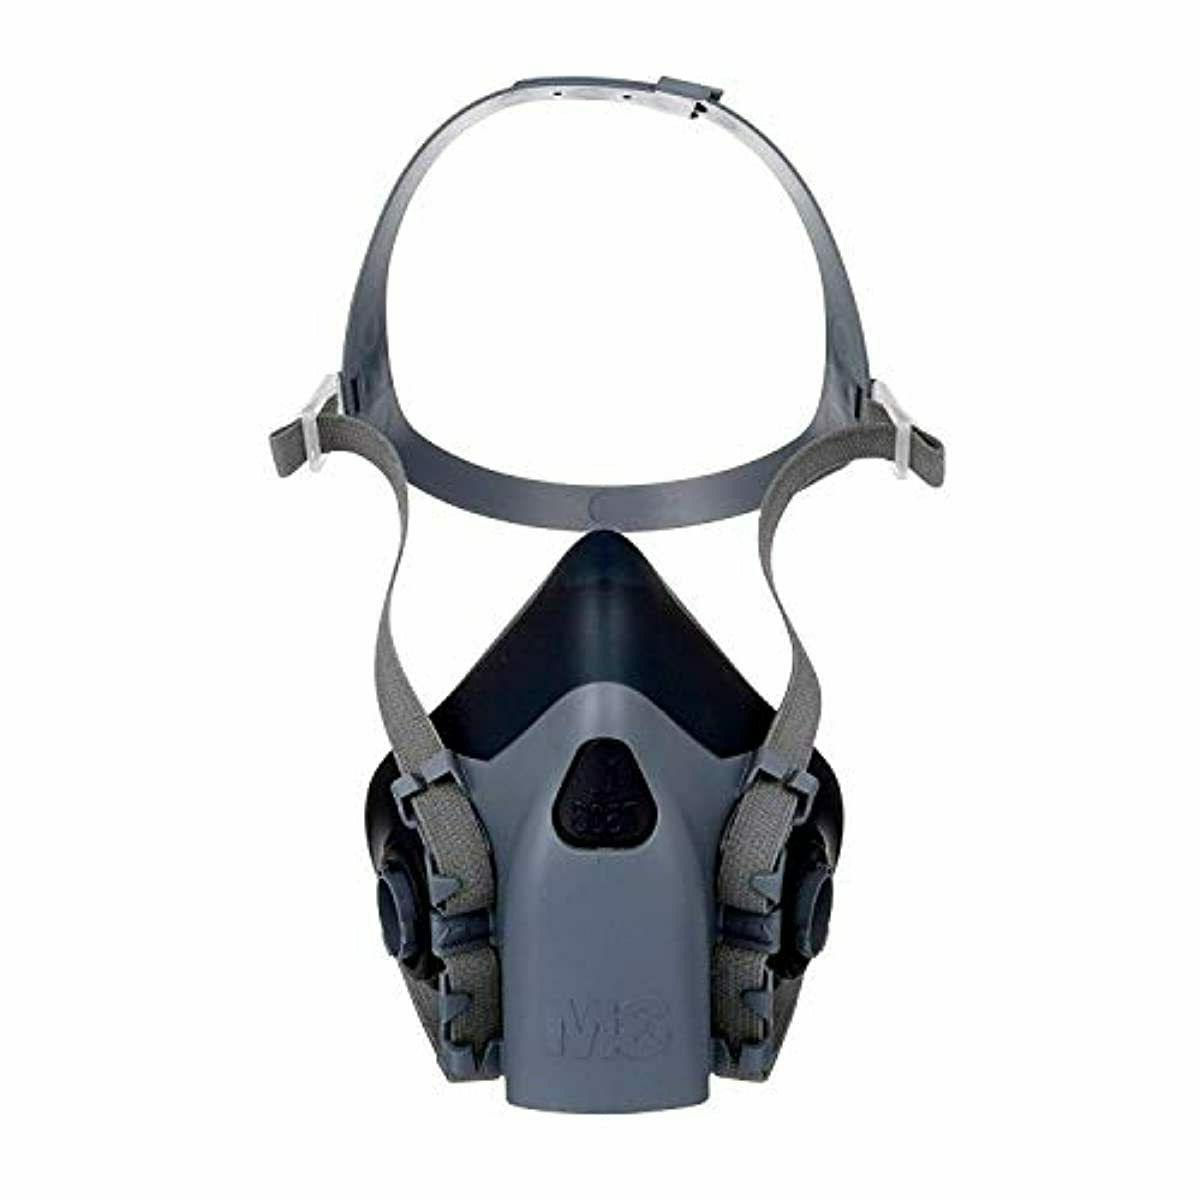 3m personal protective equipment large half facepiece